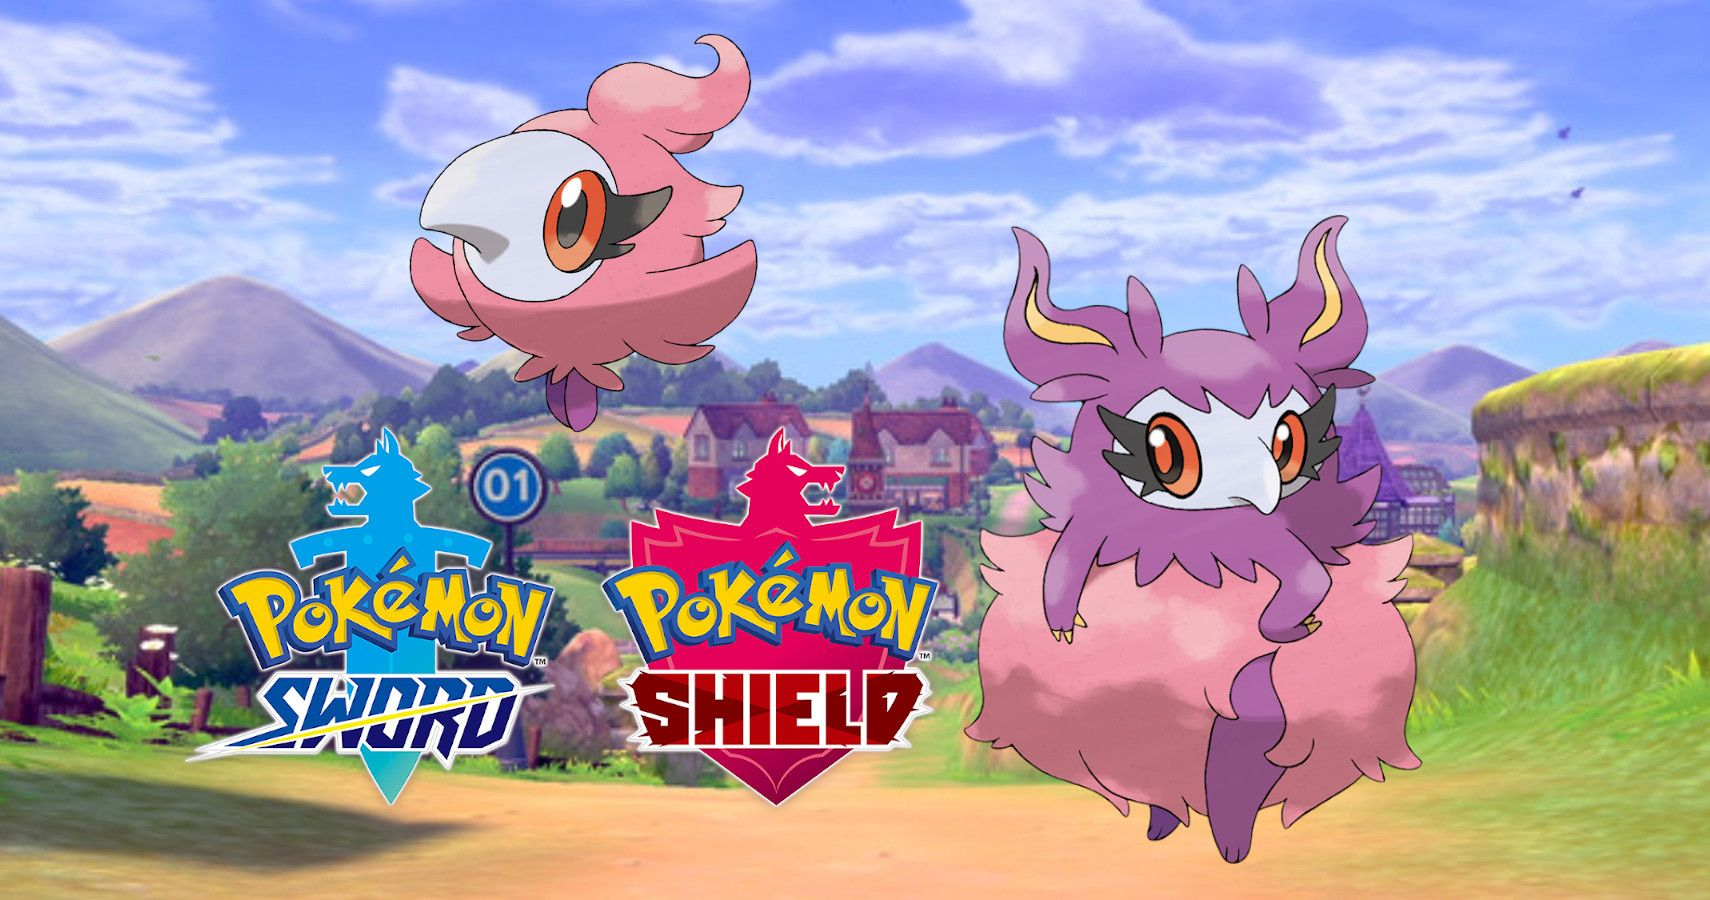 Pokemon Sword Shield How To Find Evolve Spritzee Into Aromatisse Spritzee can be called a successful evolution as it is with so many abilities and some great moveset. evolve spritzee into aromatisse